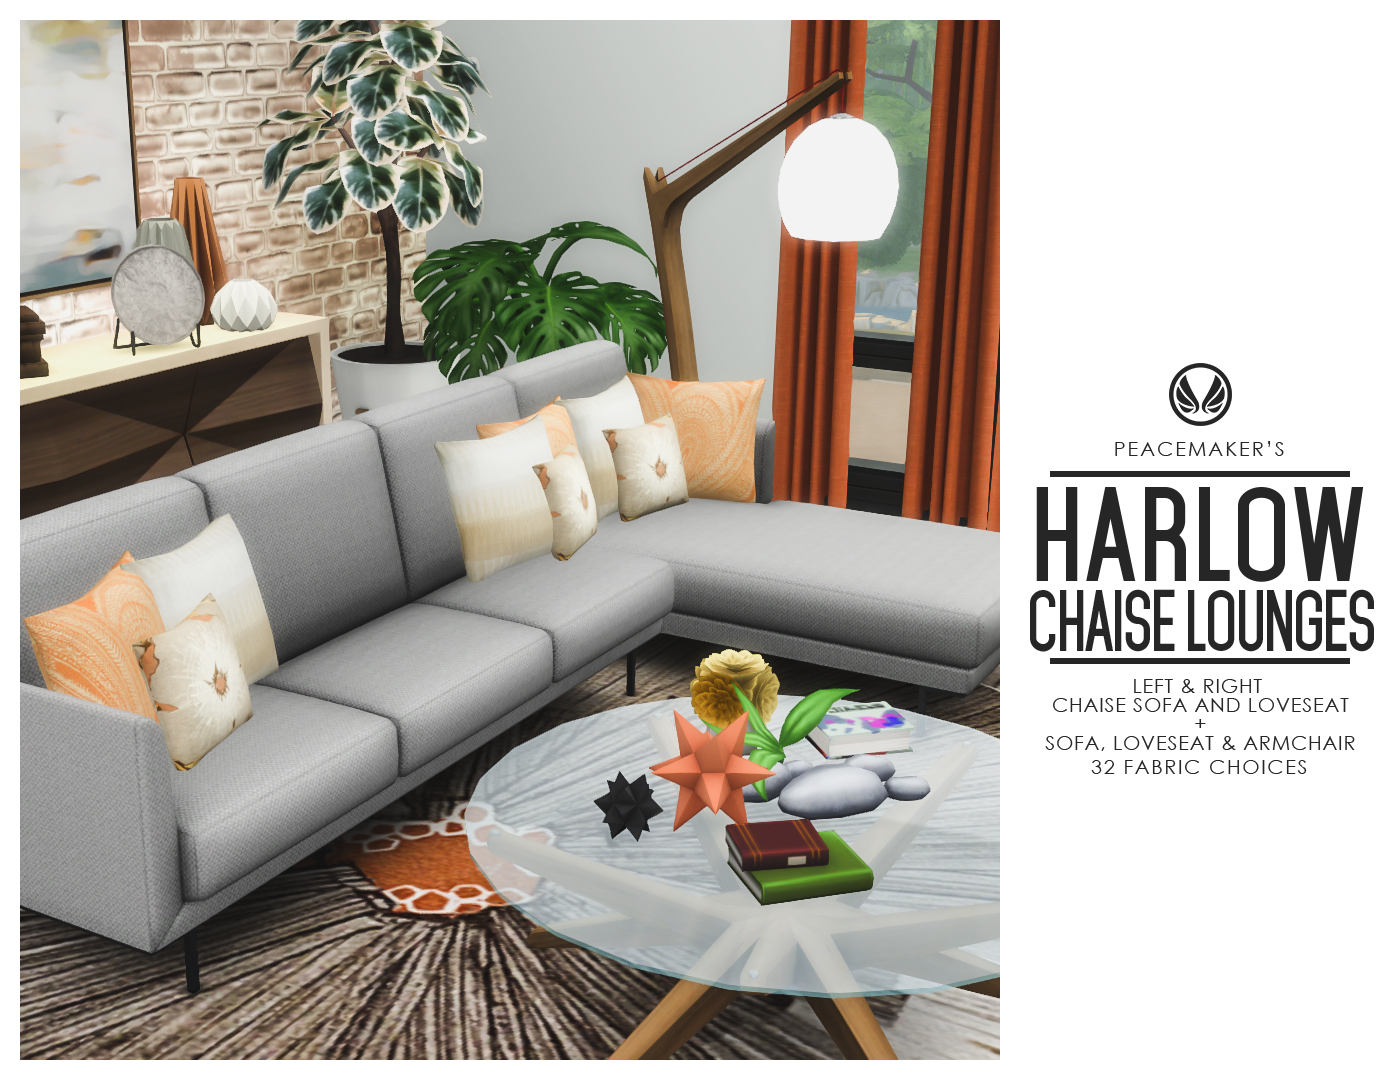 Awe Inspiring Simsational Designs Harlow Chaise Lounges Contemporary Evergreenethics Interior Chair Design Evergreenethicsorg